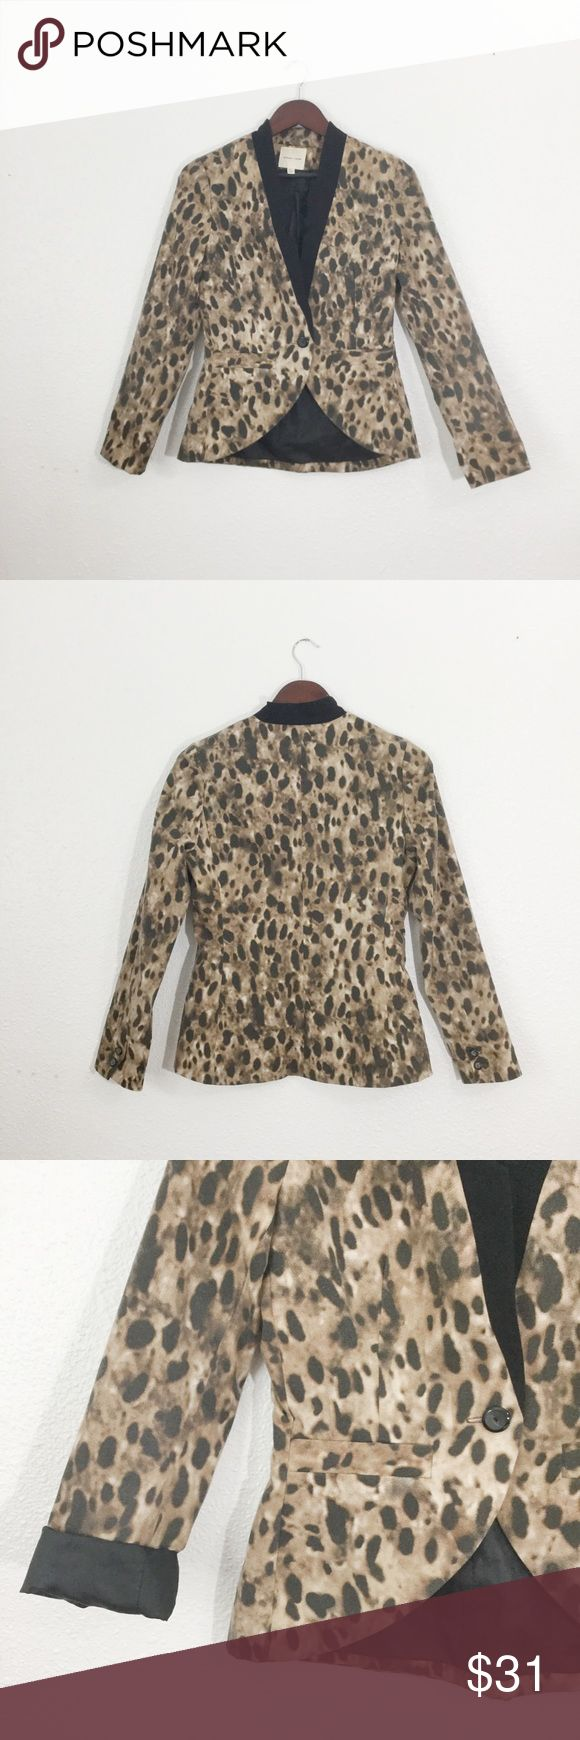 Urban Outfitters Leopard Blazer Urban Outfitters Silence + Noise leopard Blazer with black lapel detail. Fully lined. Single black button. Double faux front slit pockets. Dry clean only. Great statement piece! Urban Outfitters Jackets & Coats Blazers